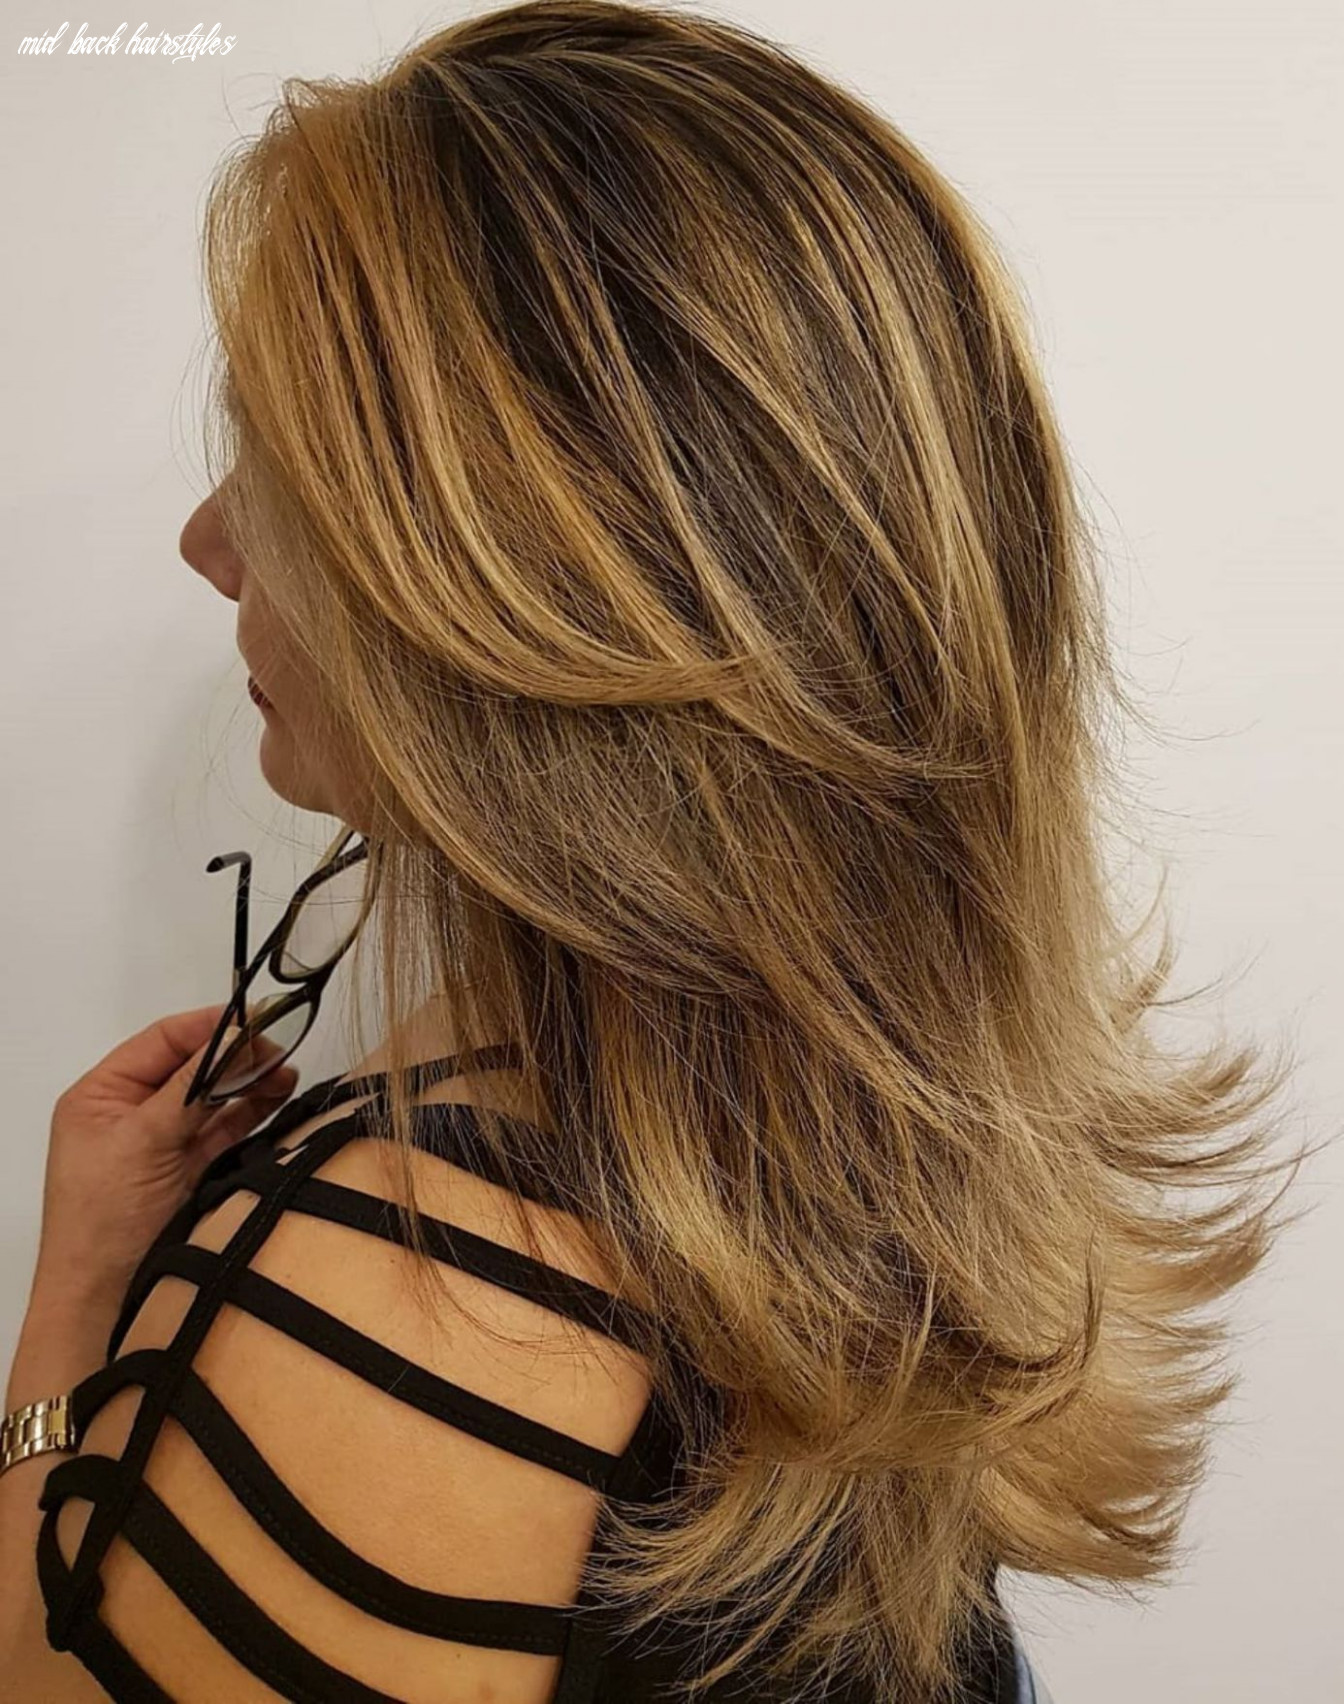 12 long hairstyles and haircuts for fine hair   haircuts for fine